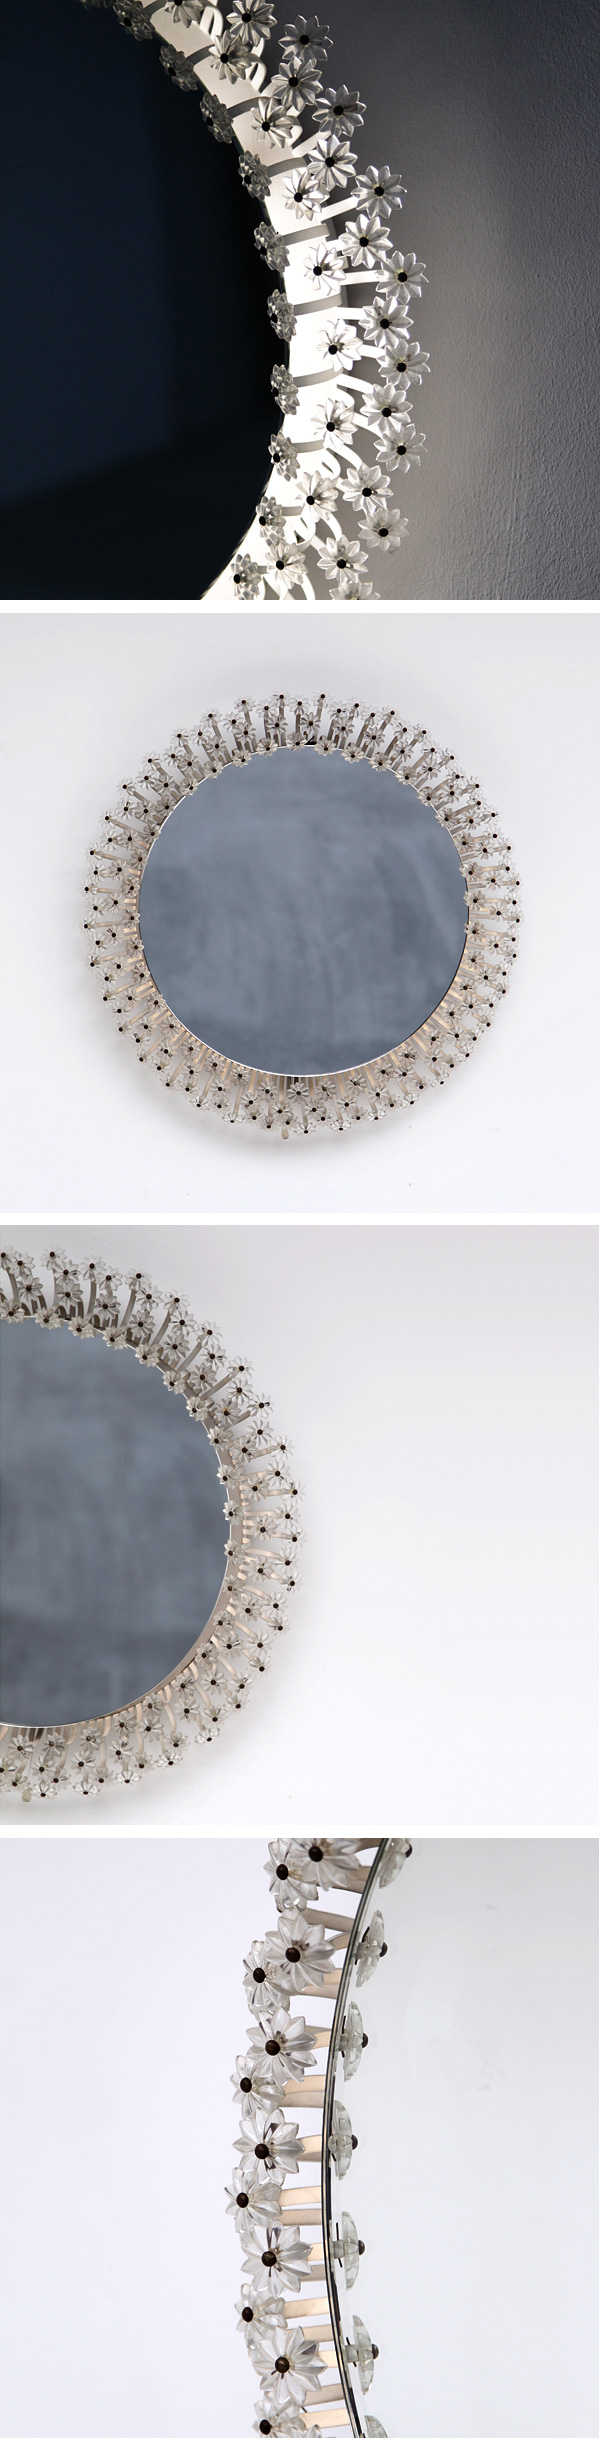 French, Fabulous, Illuminating, Mirror, 1960